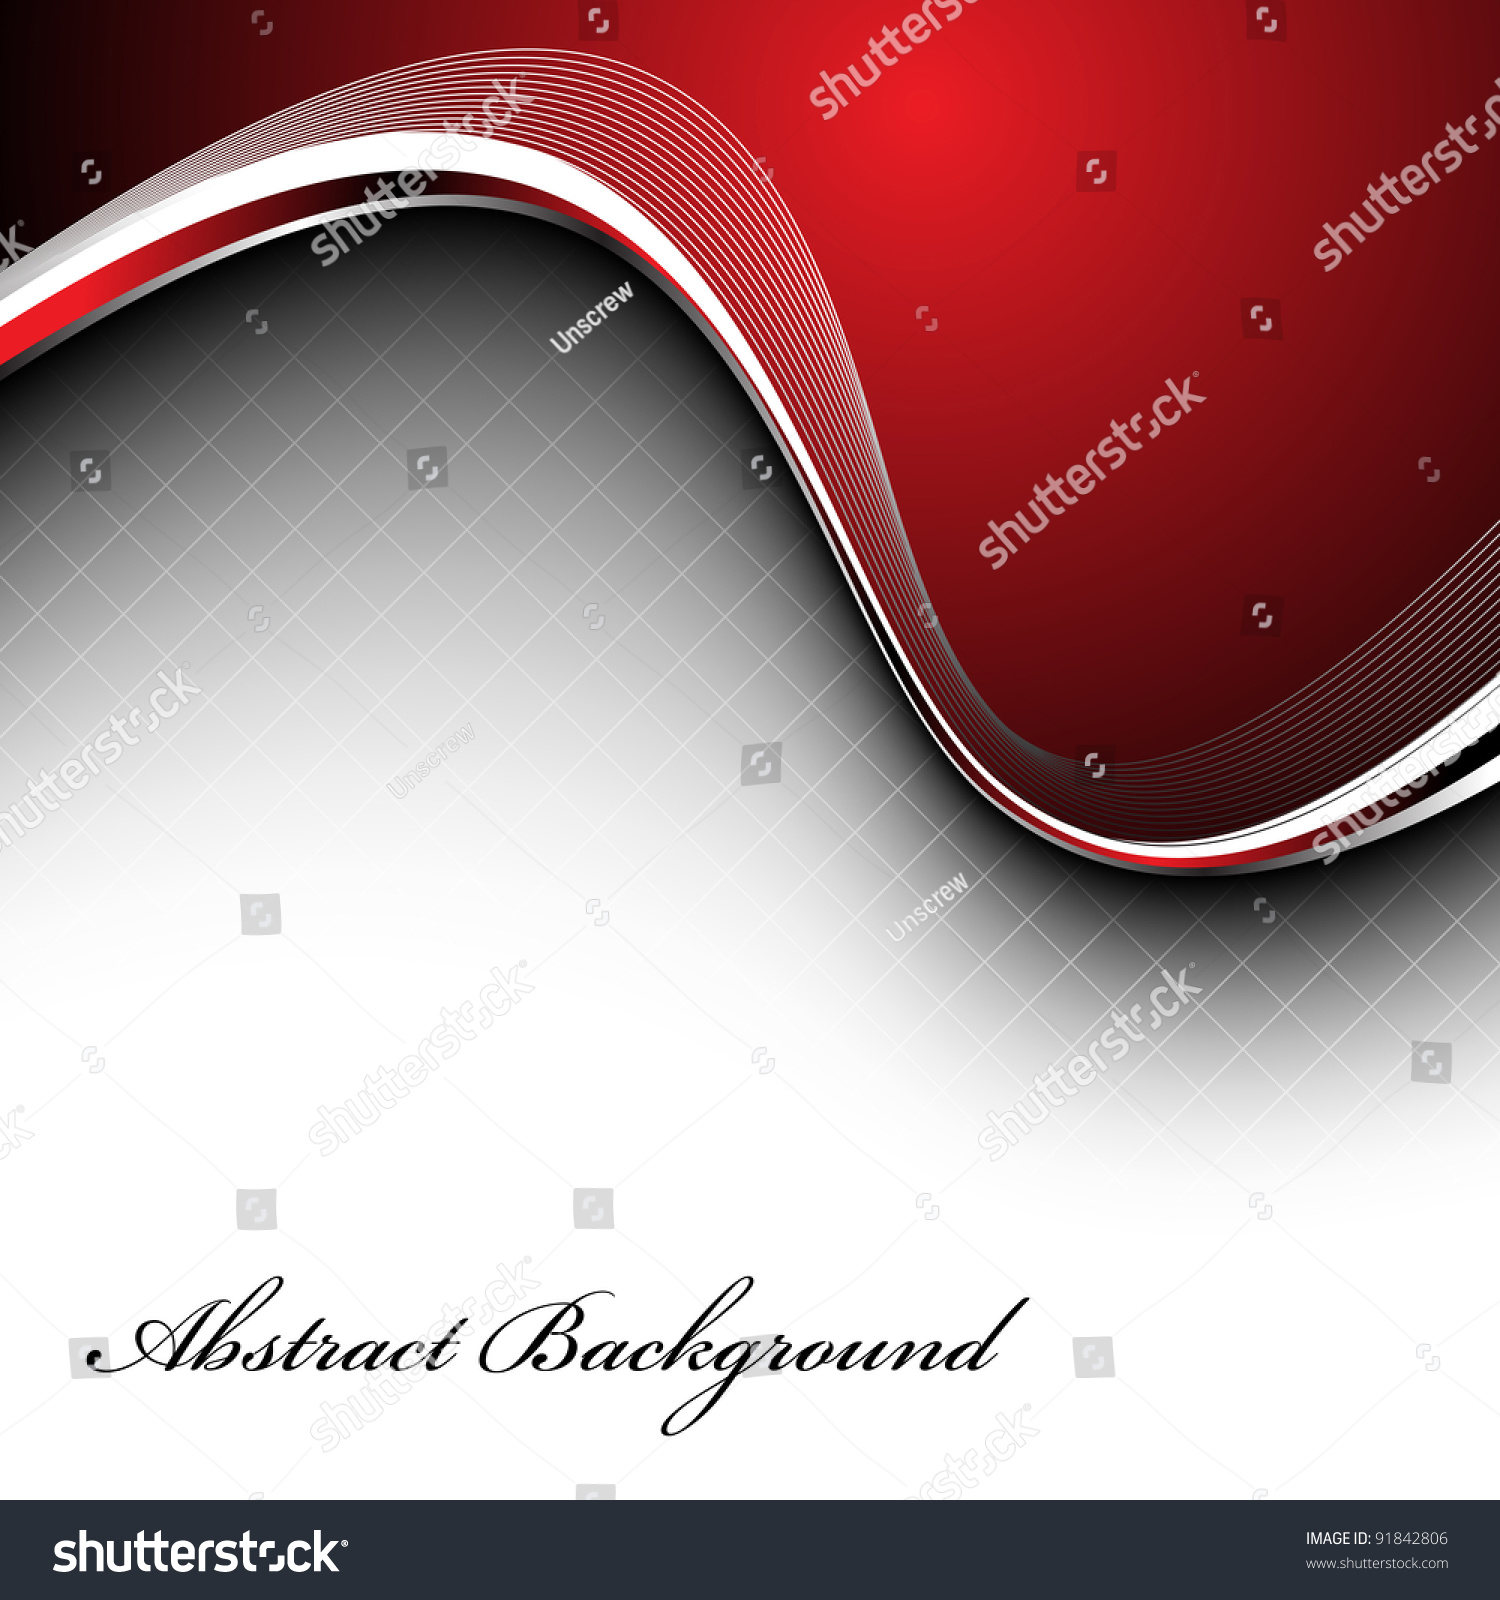 Abstract Backgrounds. Vector Illustration. Clip-Art